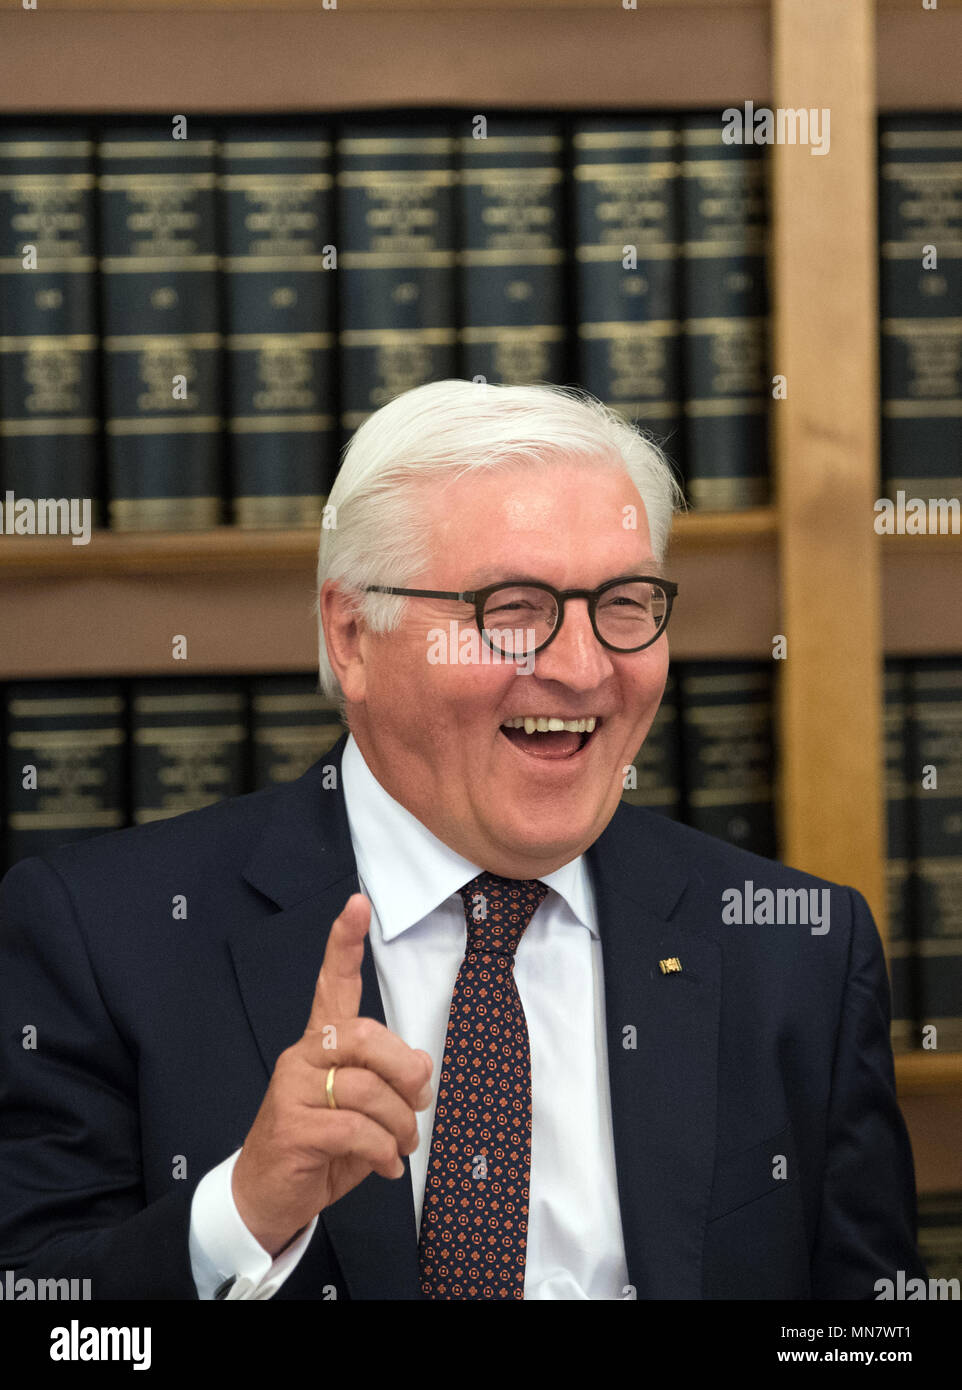 Amsterdam, The Netherlands. 15th May, 2018. German President Frank-Walter Steinmeier smiling during his visit at the Handelingenkamer in the parliament. Photo: Soeren Stache/dpa Credit: dpa picture alliance/Alamy Live News Stock Photo